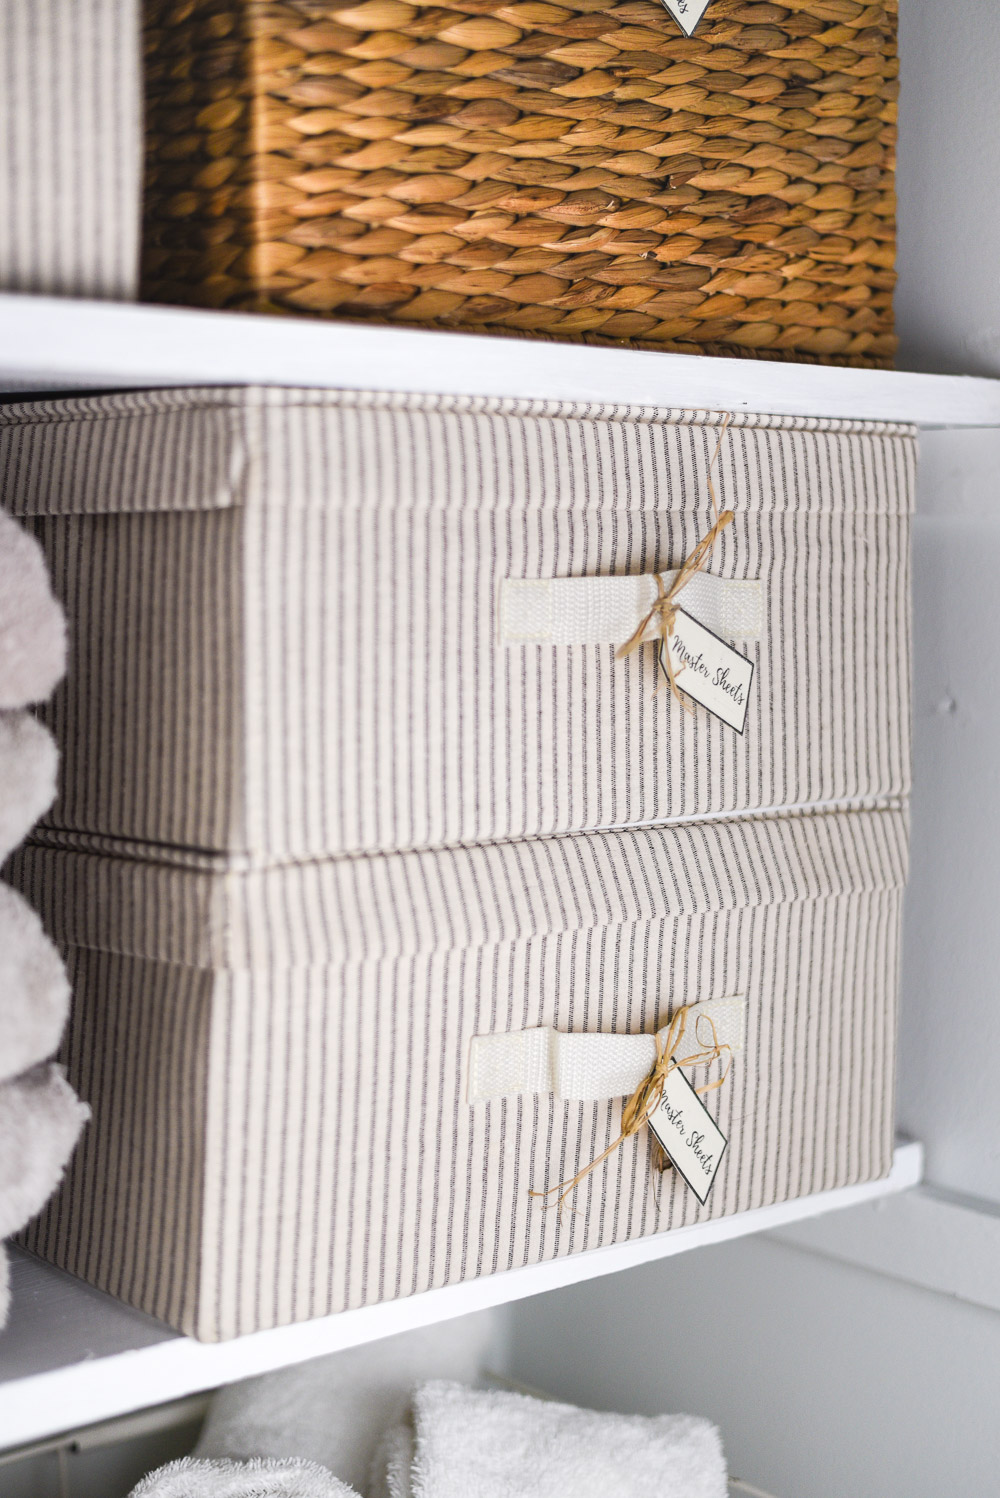 Linen Closet Makeover By The Weathered Fox 9